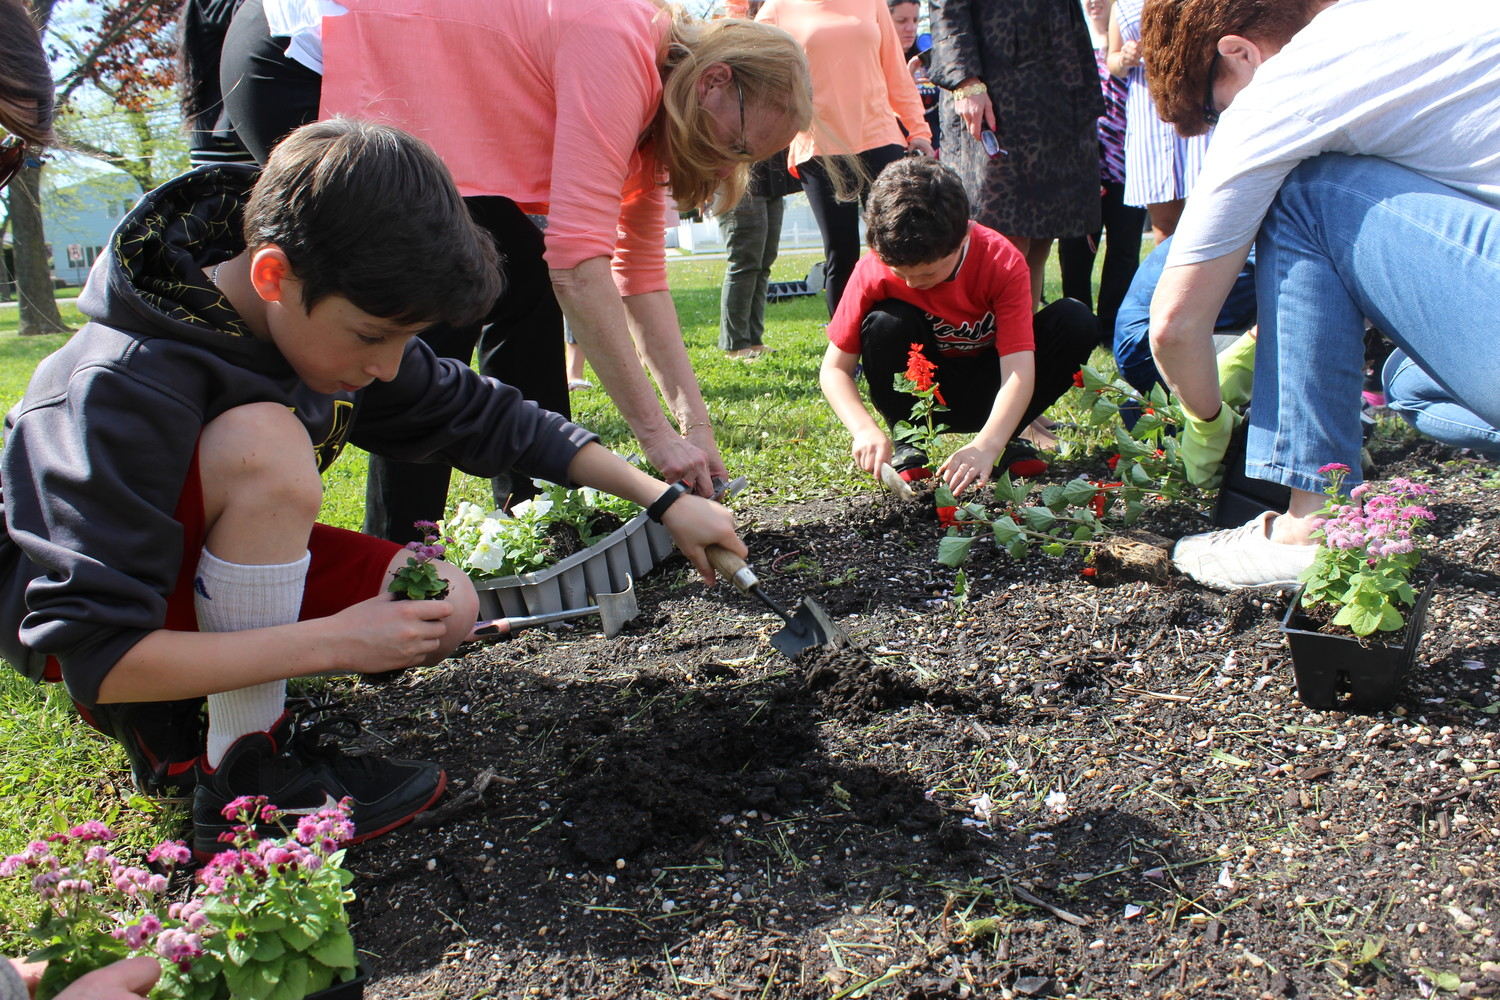 Alex Frank, a fourth-grade student at Bowling Green Elementary School, spent time after school planting flowers with his friends.